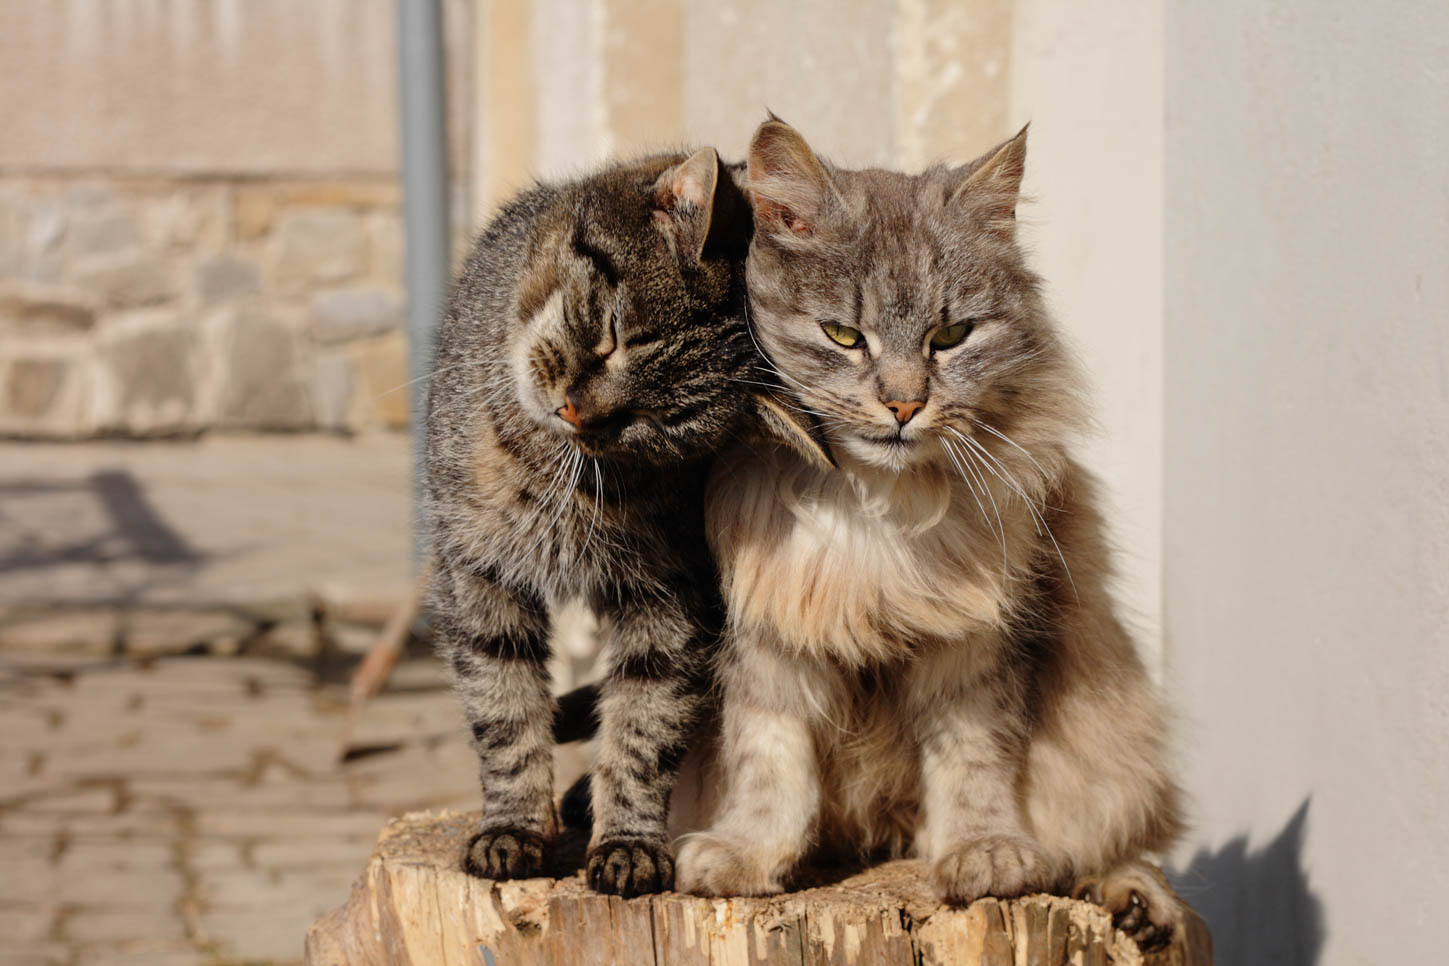 Cat-To-Cat Introduction